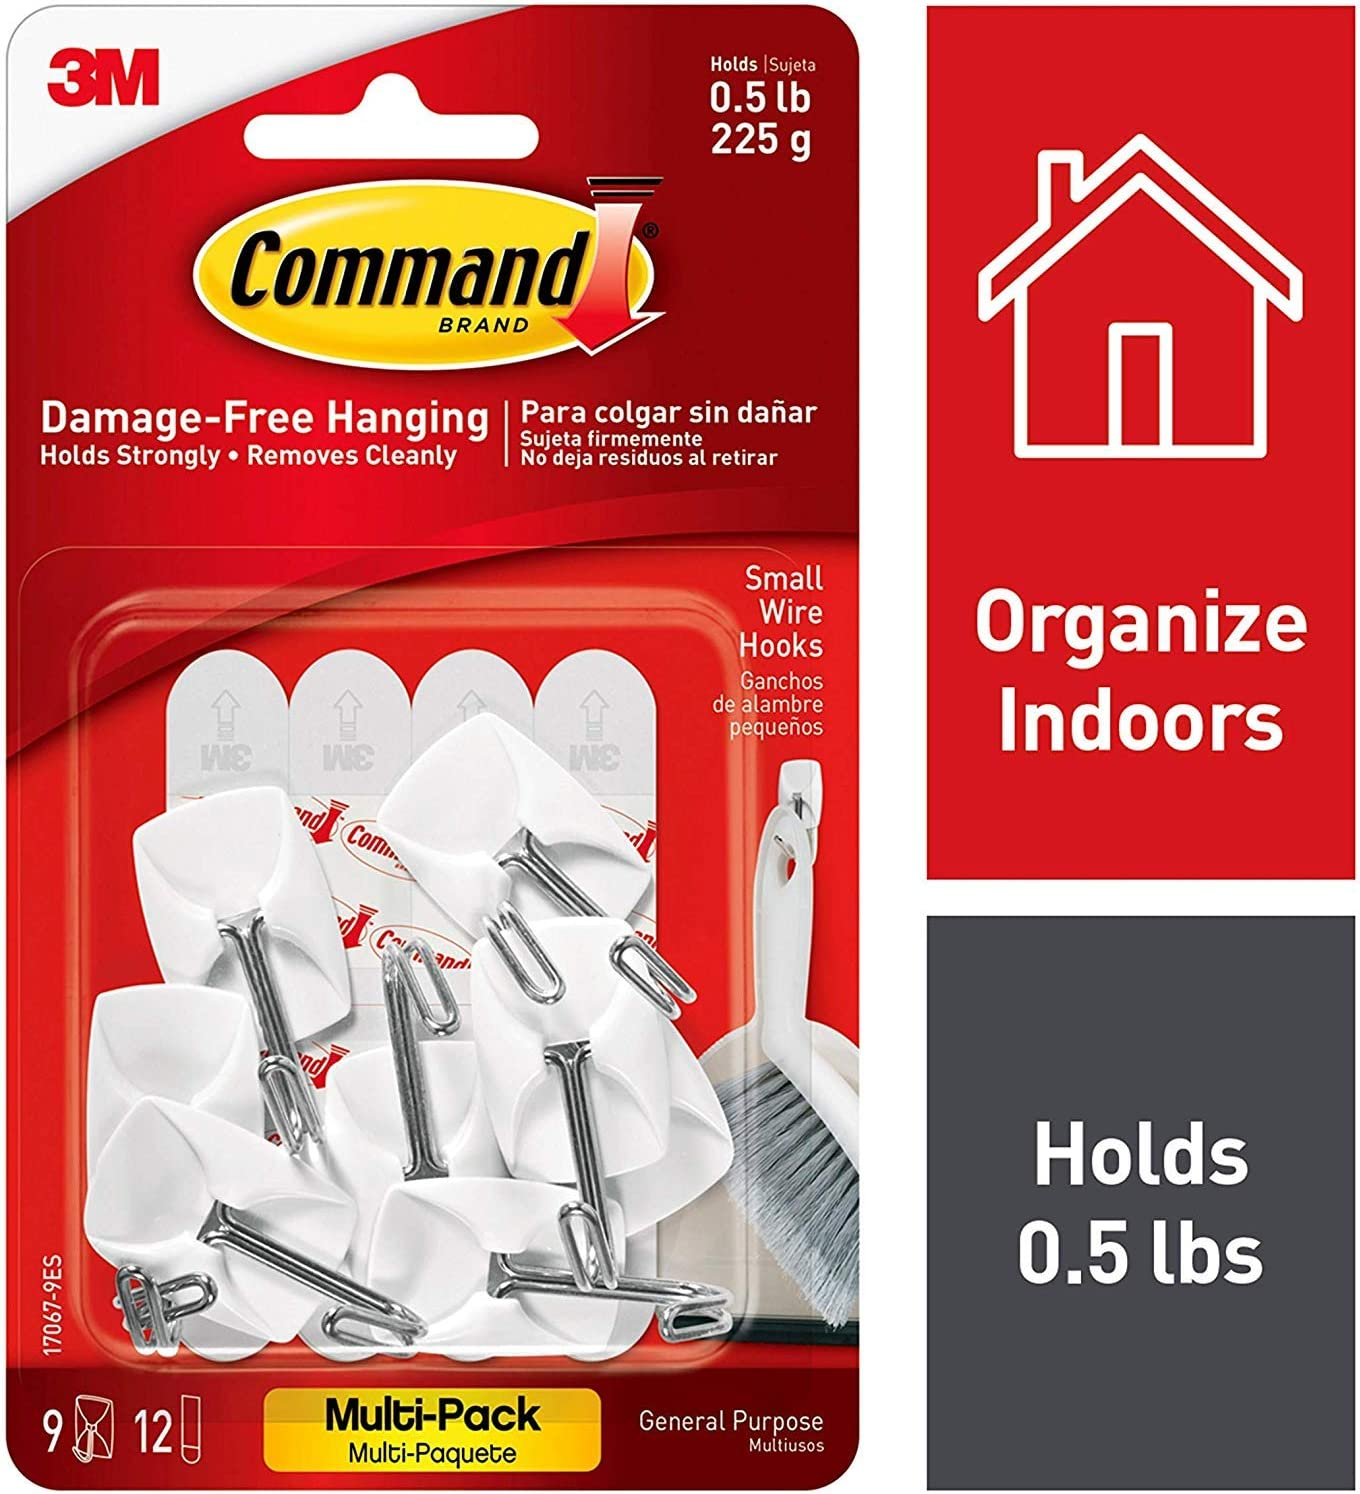 3M Command 9 Small Wire Hooks 12 Adhesive Strips Wall Hanger VALUE PACK 17067-VP